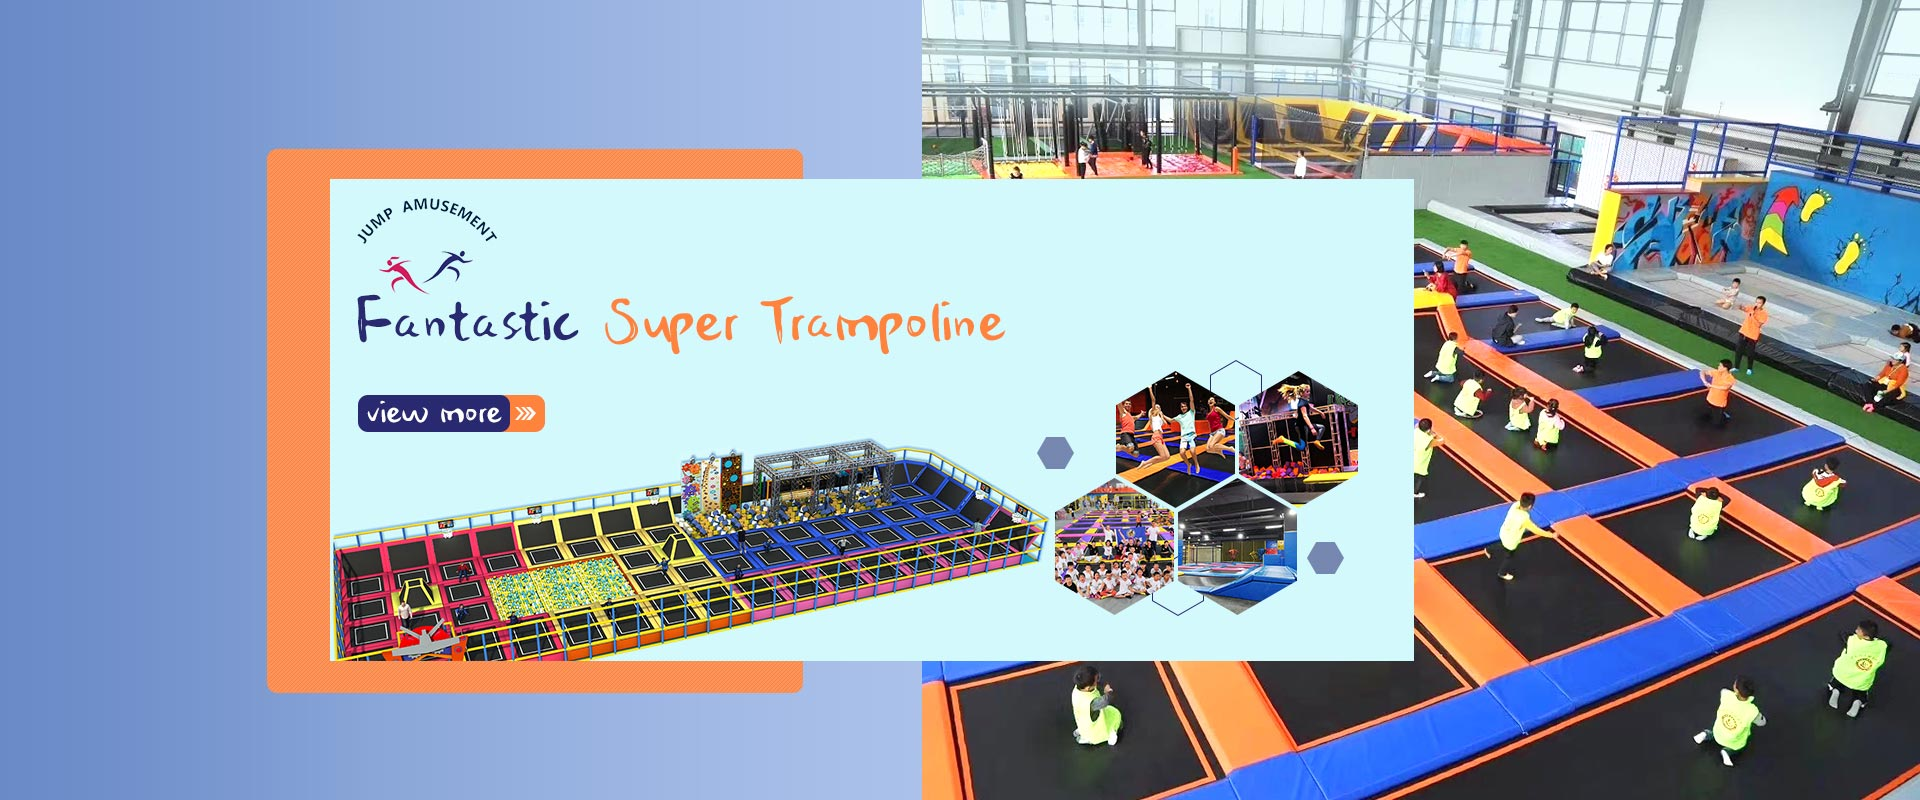 Fantastična super Trampolin